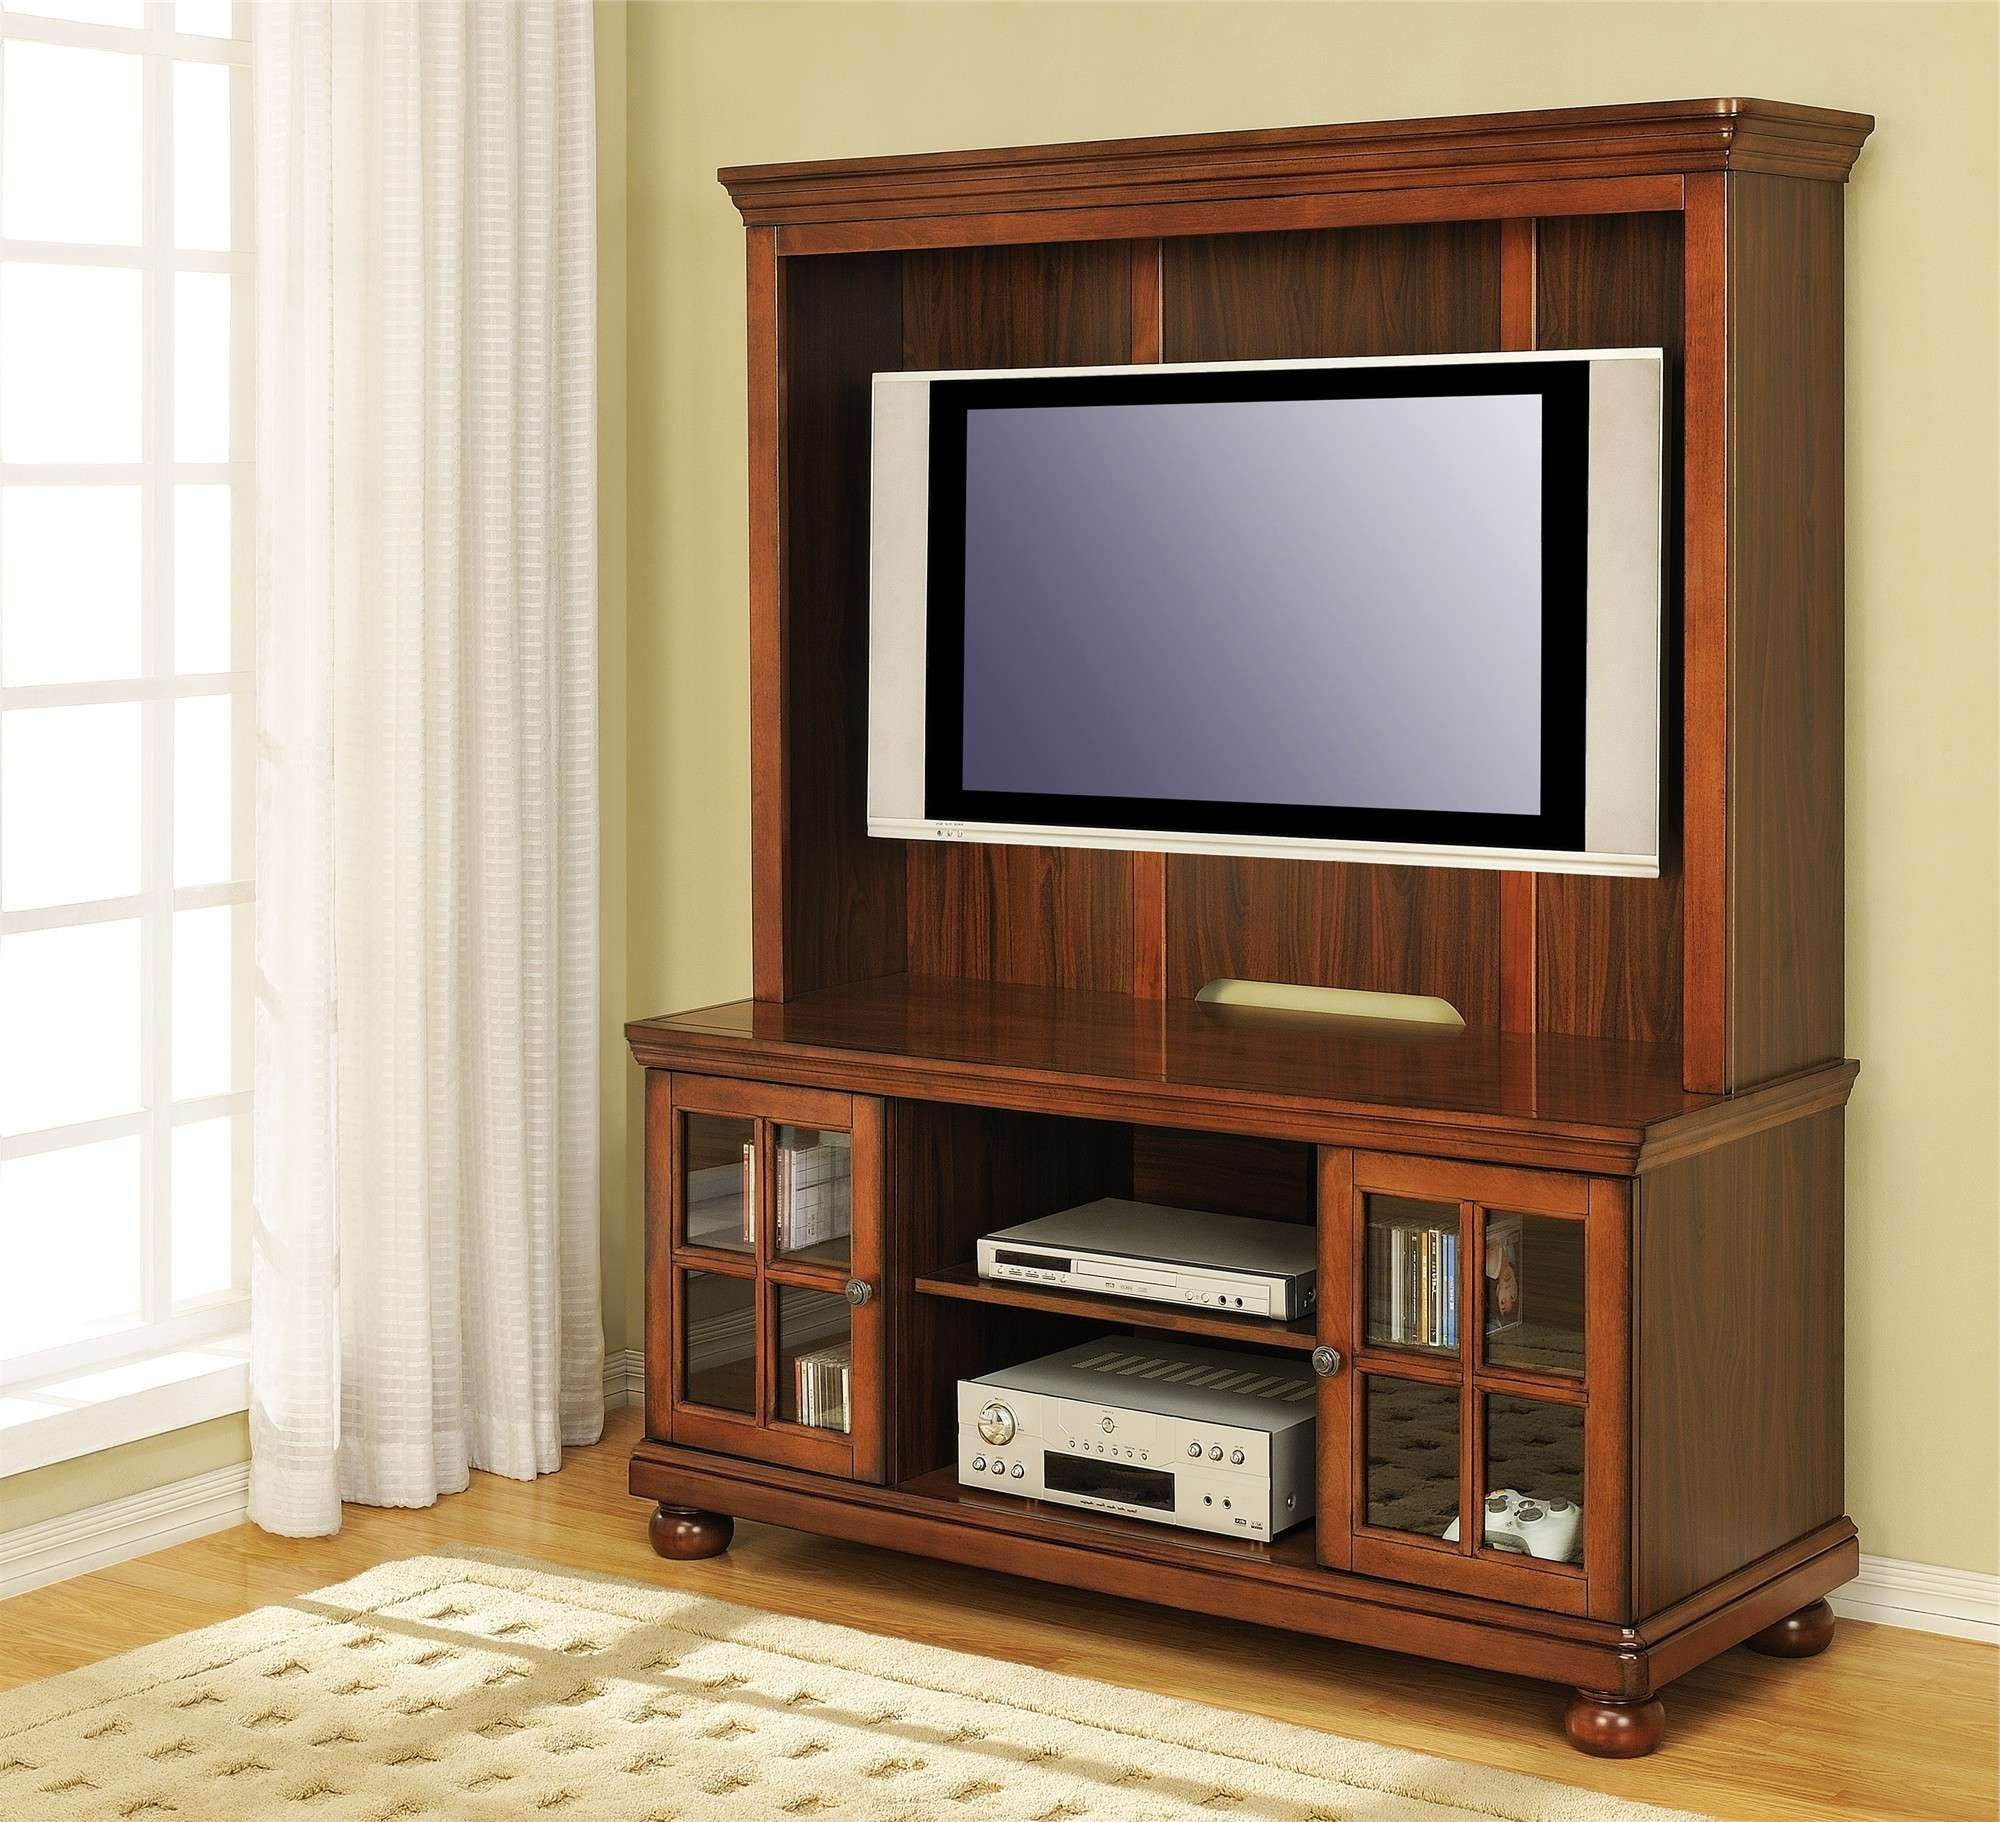 Modern Brown Oak Wood Media Cabinet With Mounted Tv Of Dazzling Inside Wooden Tv Stands With Glass Doors (View 10 of 15)